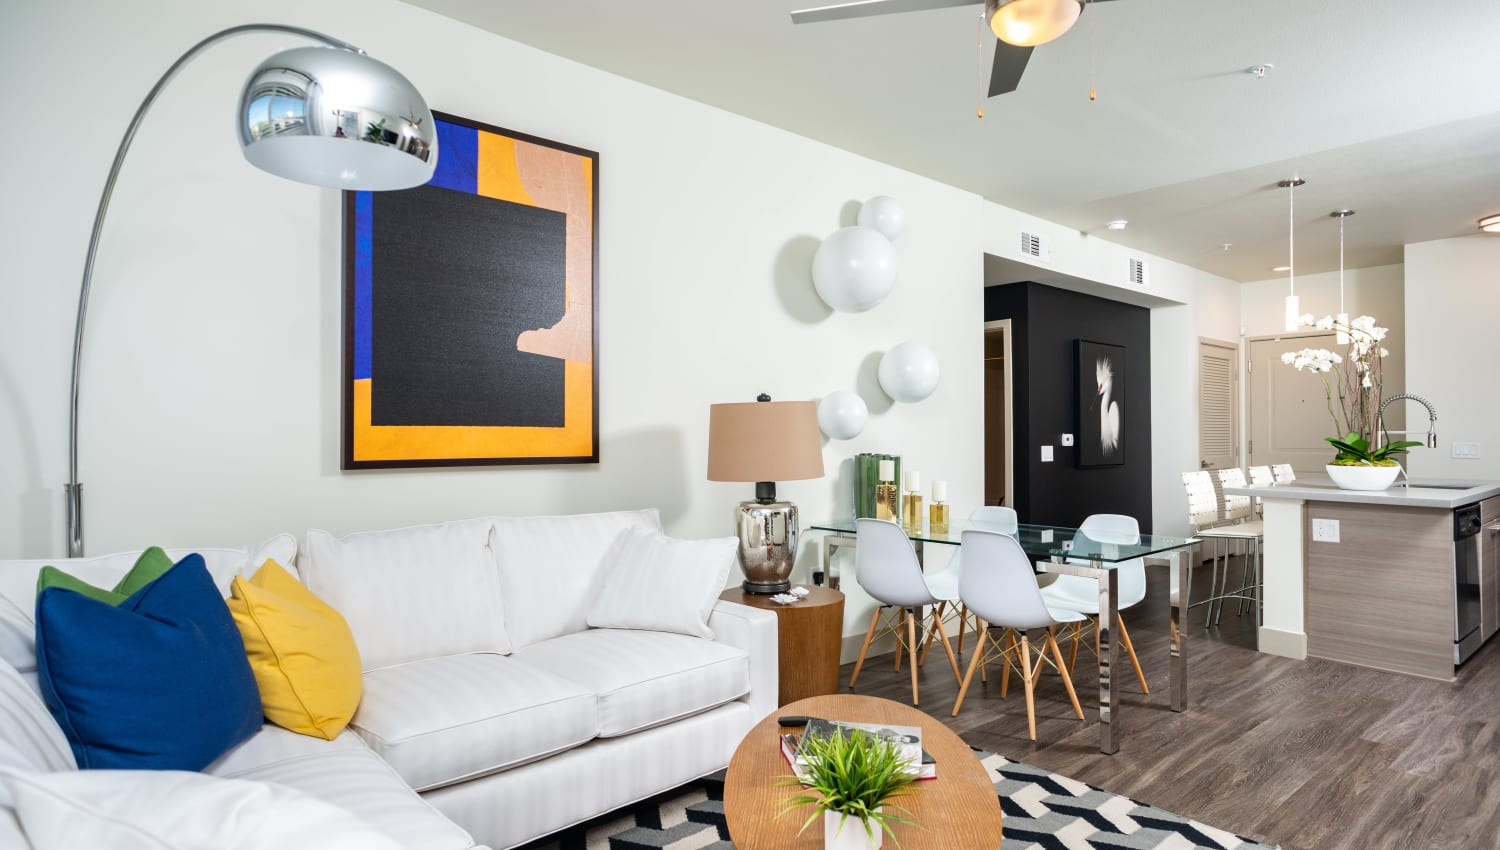 Modern furnishings and a ceiling fan in a model apartment's living area at Fusion Apartments in Irvine, California